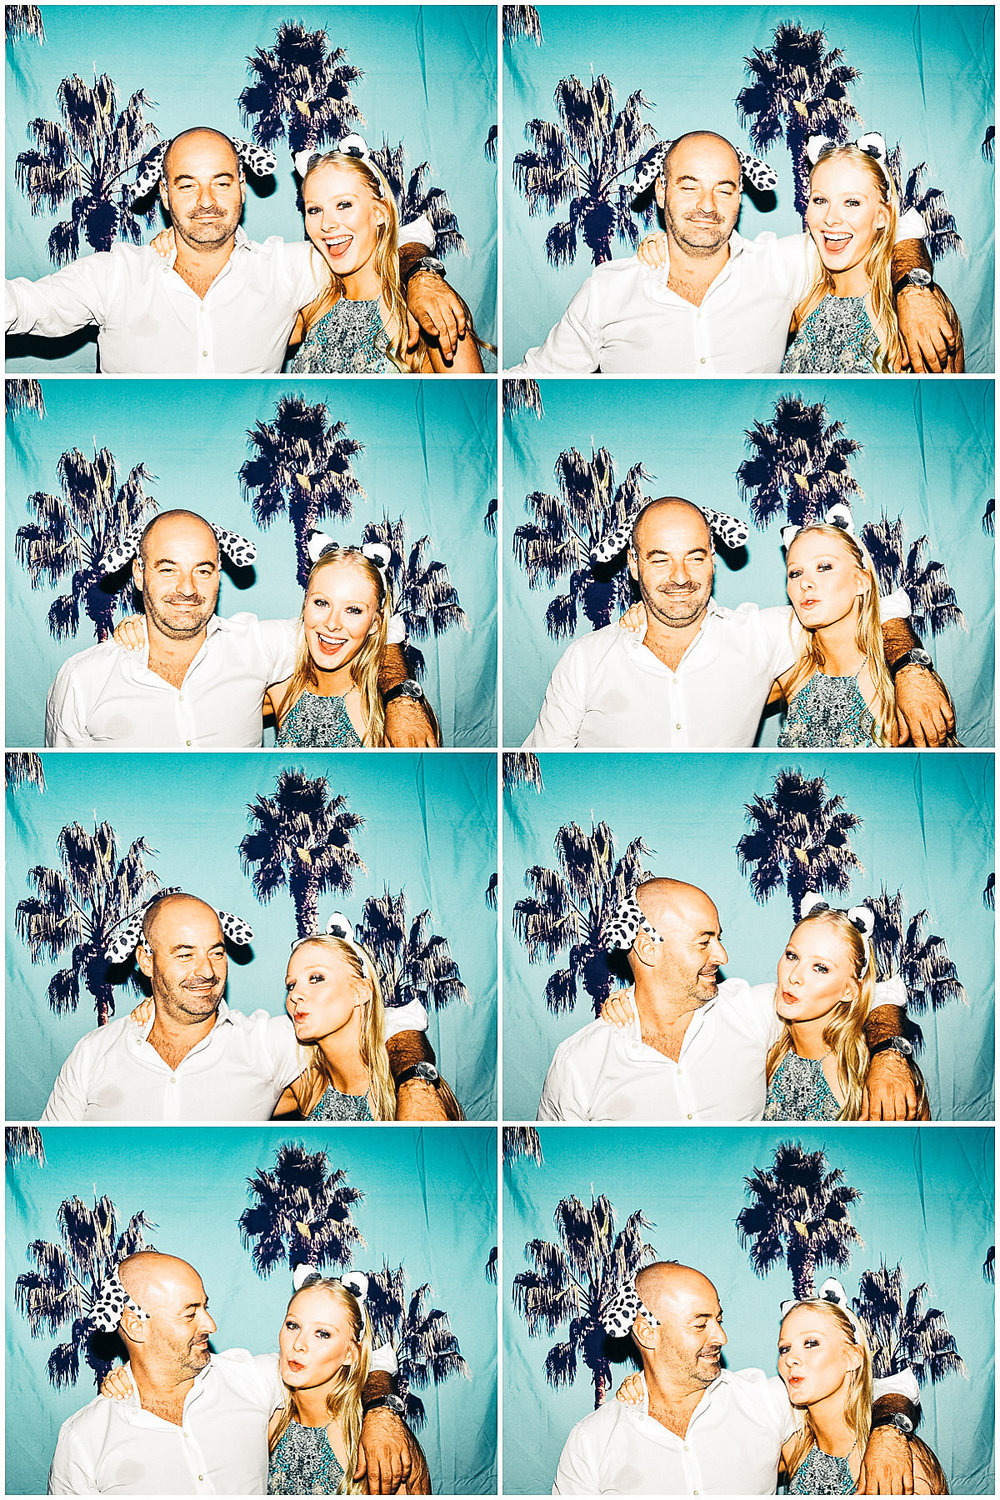 photobooth-106.jpg